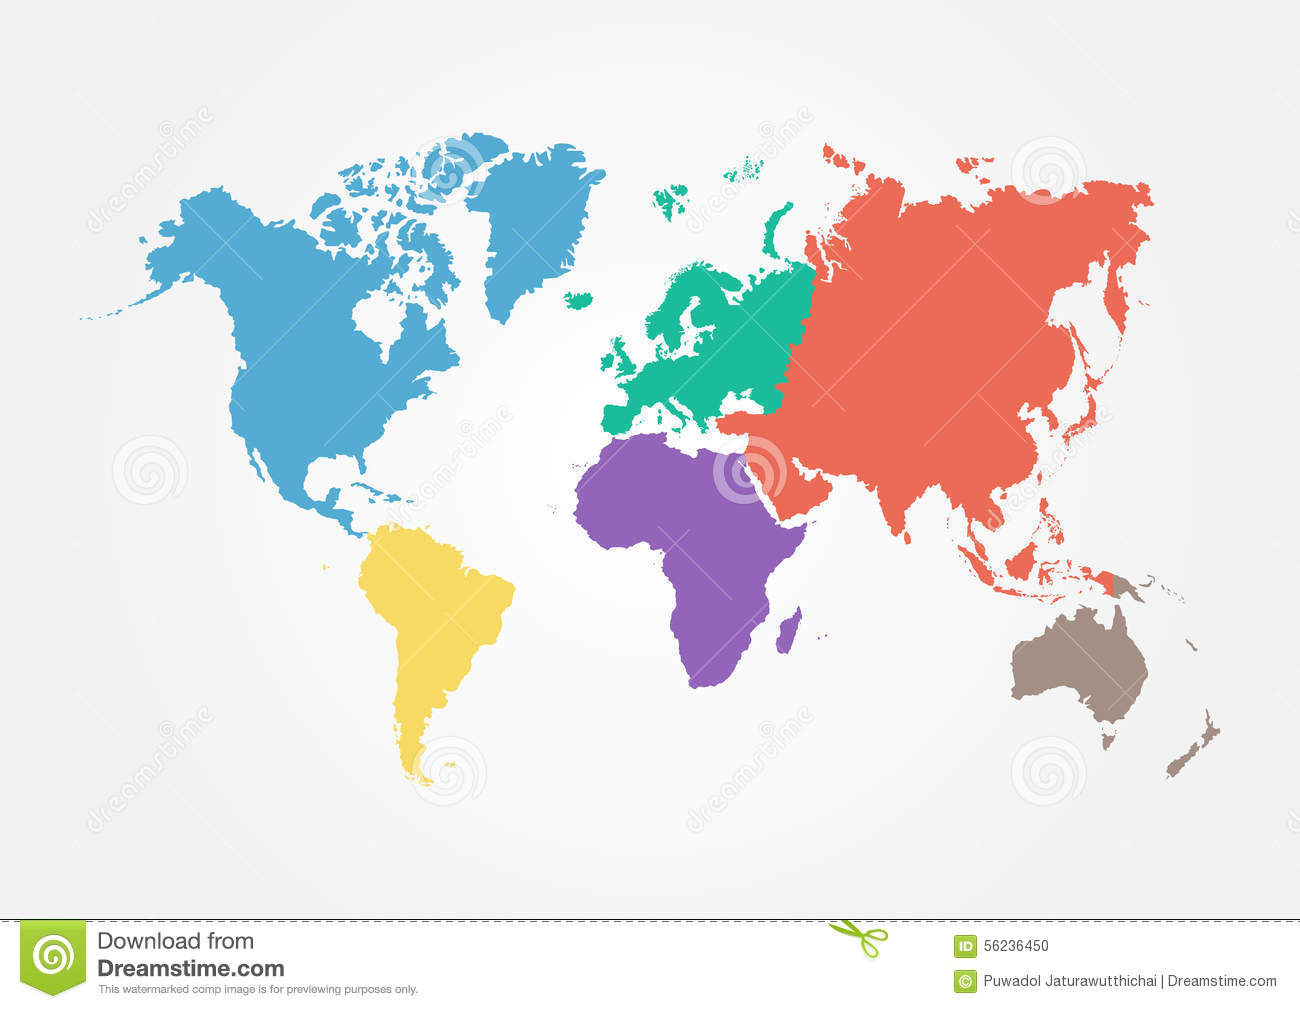 Vector world map with continent in different color flat design vector world map with continent in different color flat design stock vector illustration of atlantic colorless 56236450 gumiabroncs Images